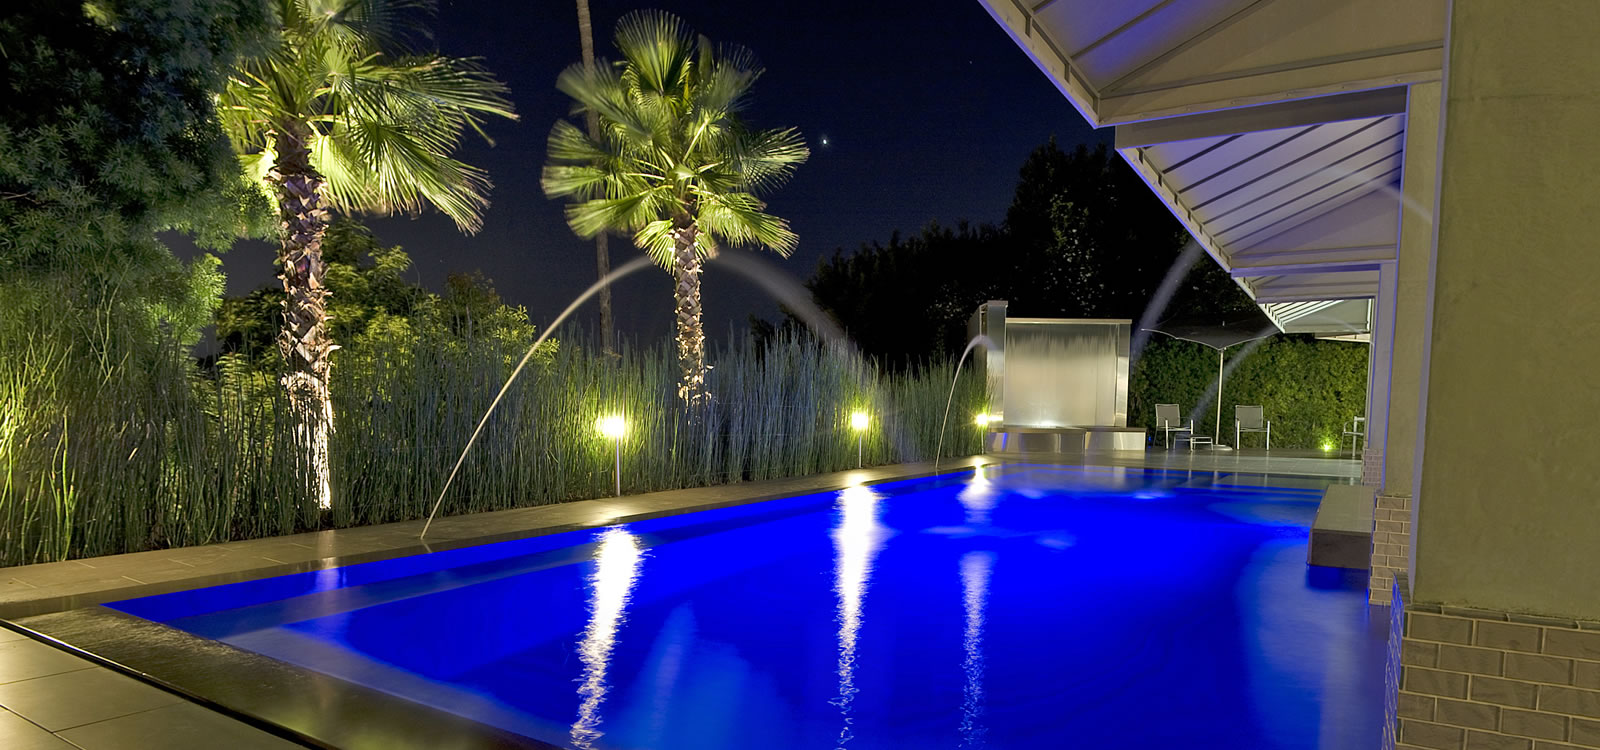 Index of /images/g-beverly-hills-perimeter-overflow-pool